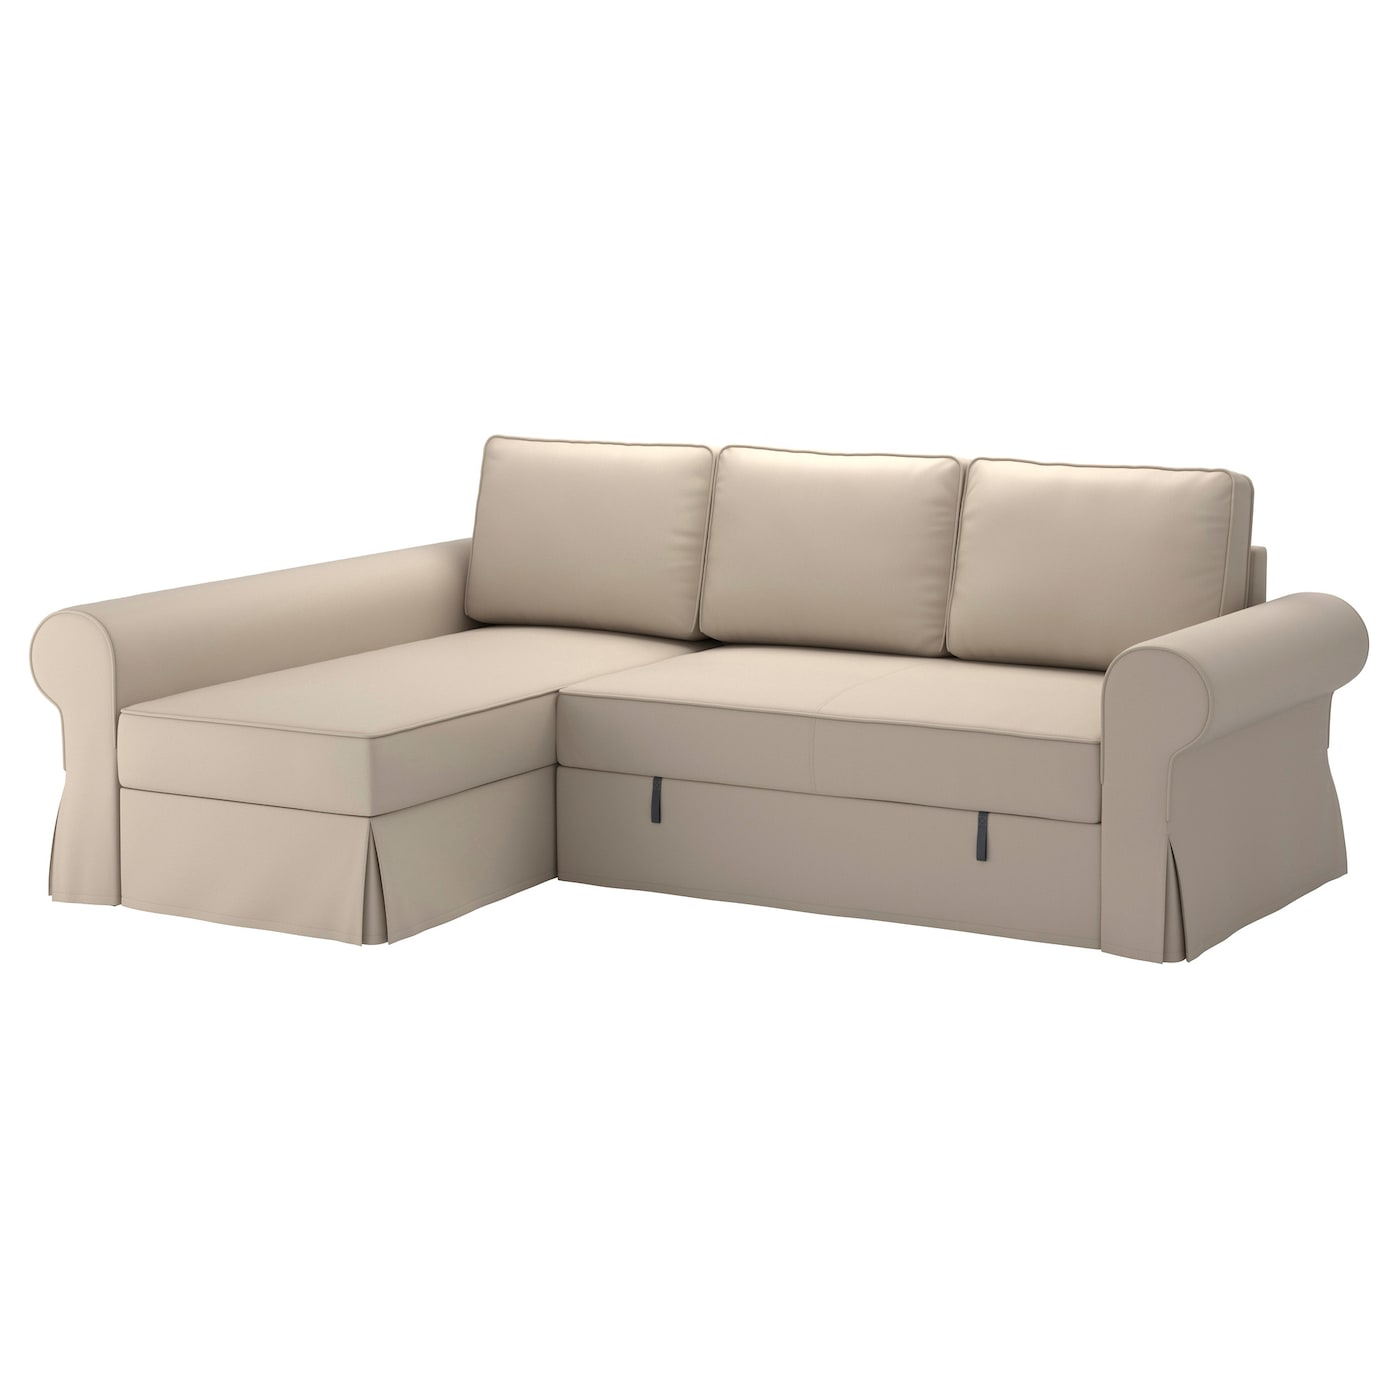 Backabro sofa bed with chaise longue ramna beige ikea for Chaise longue en toile pliante